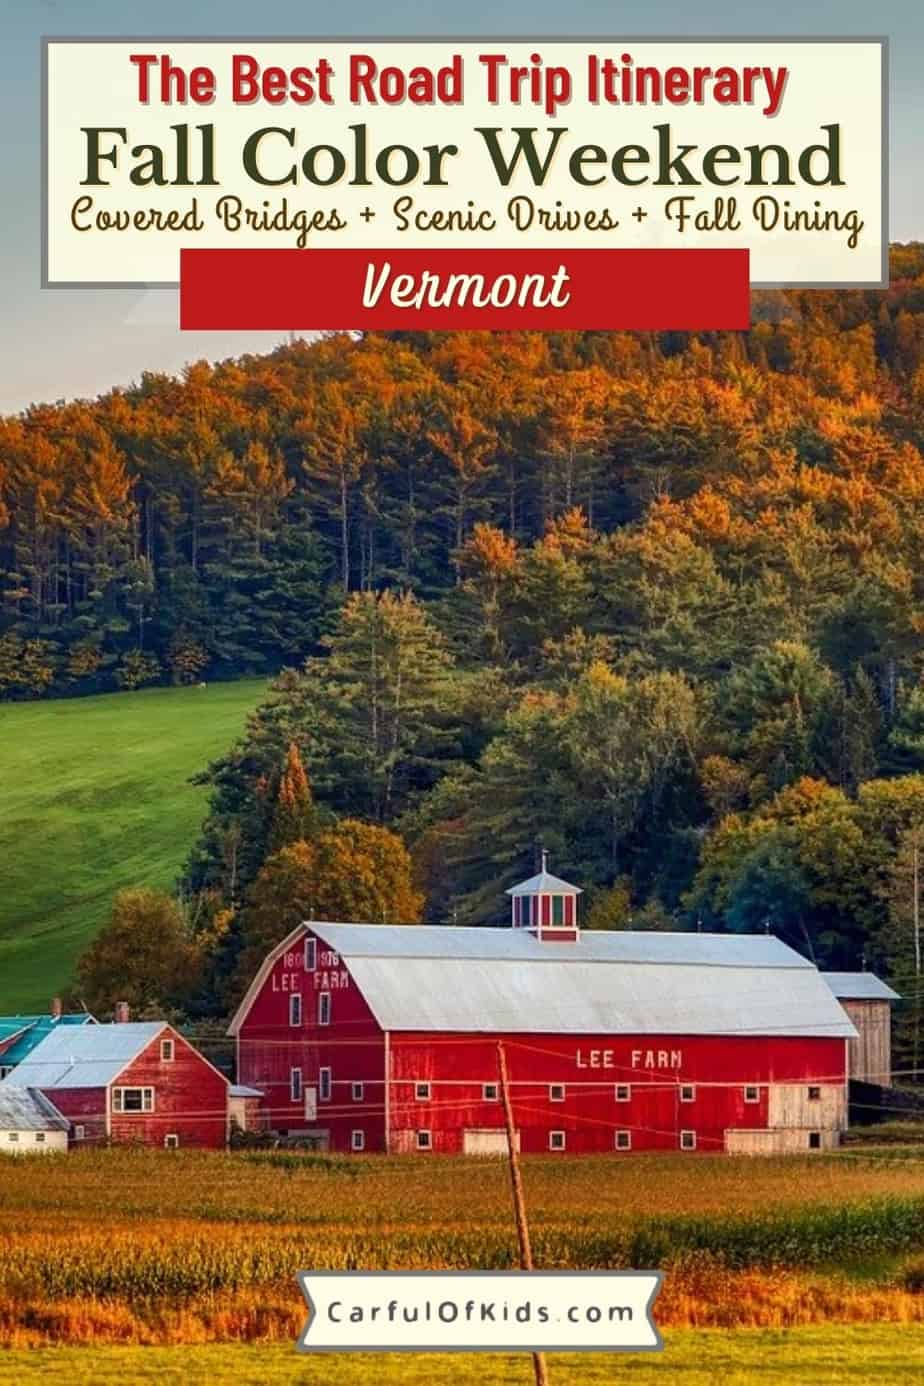 Take a Fall Color Road Trip through Vermont along the fabled Green Mountains Byway, a scenic route packed with farmstands, covered bridges, general stores and more. Find your favorite Made in Vermon products like cheese and cider and end the day at a Biergarten. Best Fall Color Road Trip through Vermont   Where to go in Vermont for a color weekend   Best scenic drives in Vermont #Vermont #LeafPeeping #FallColor